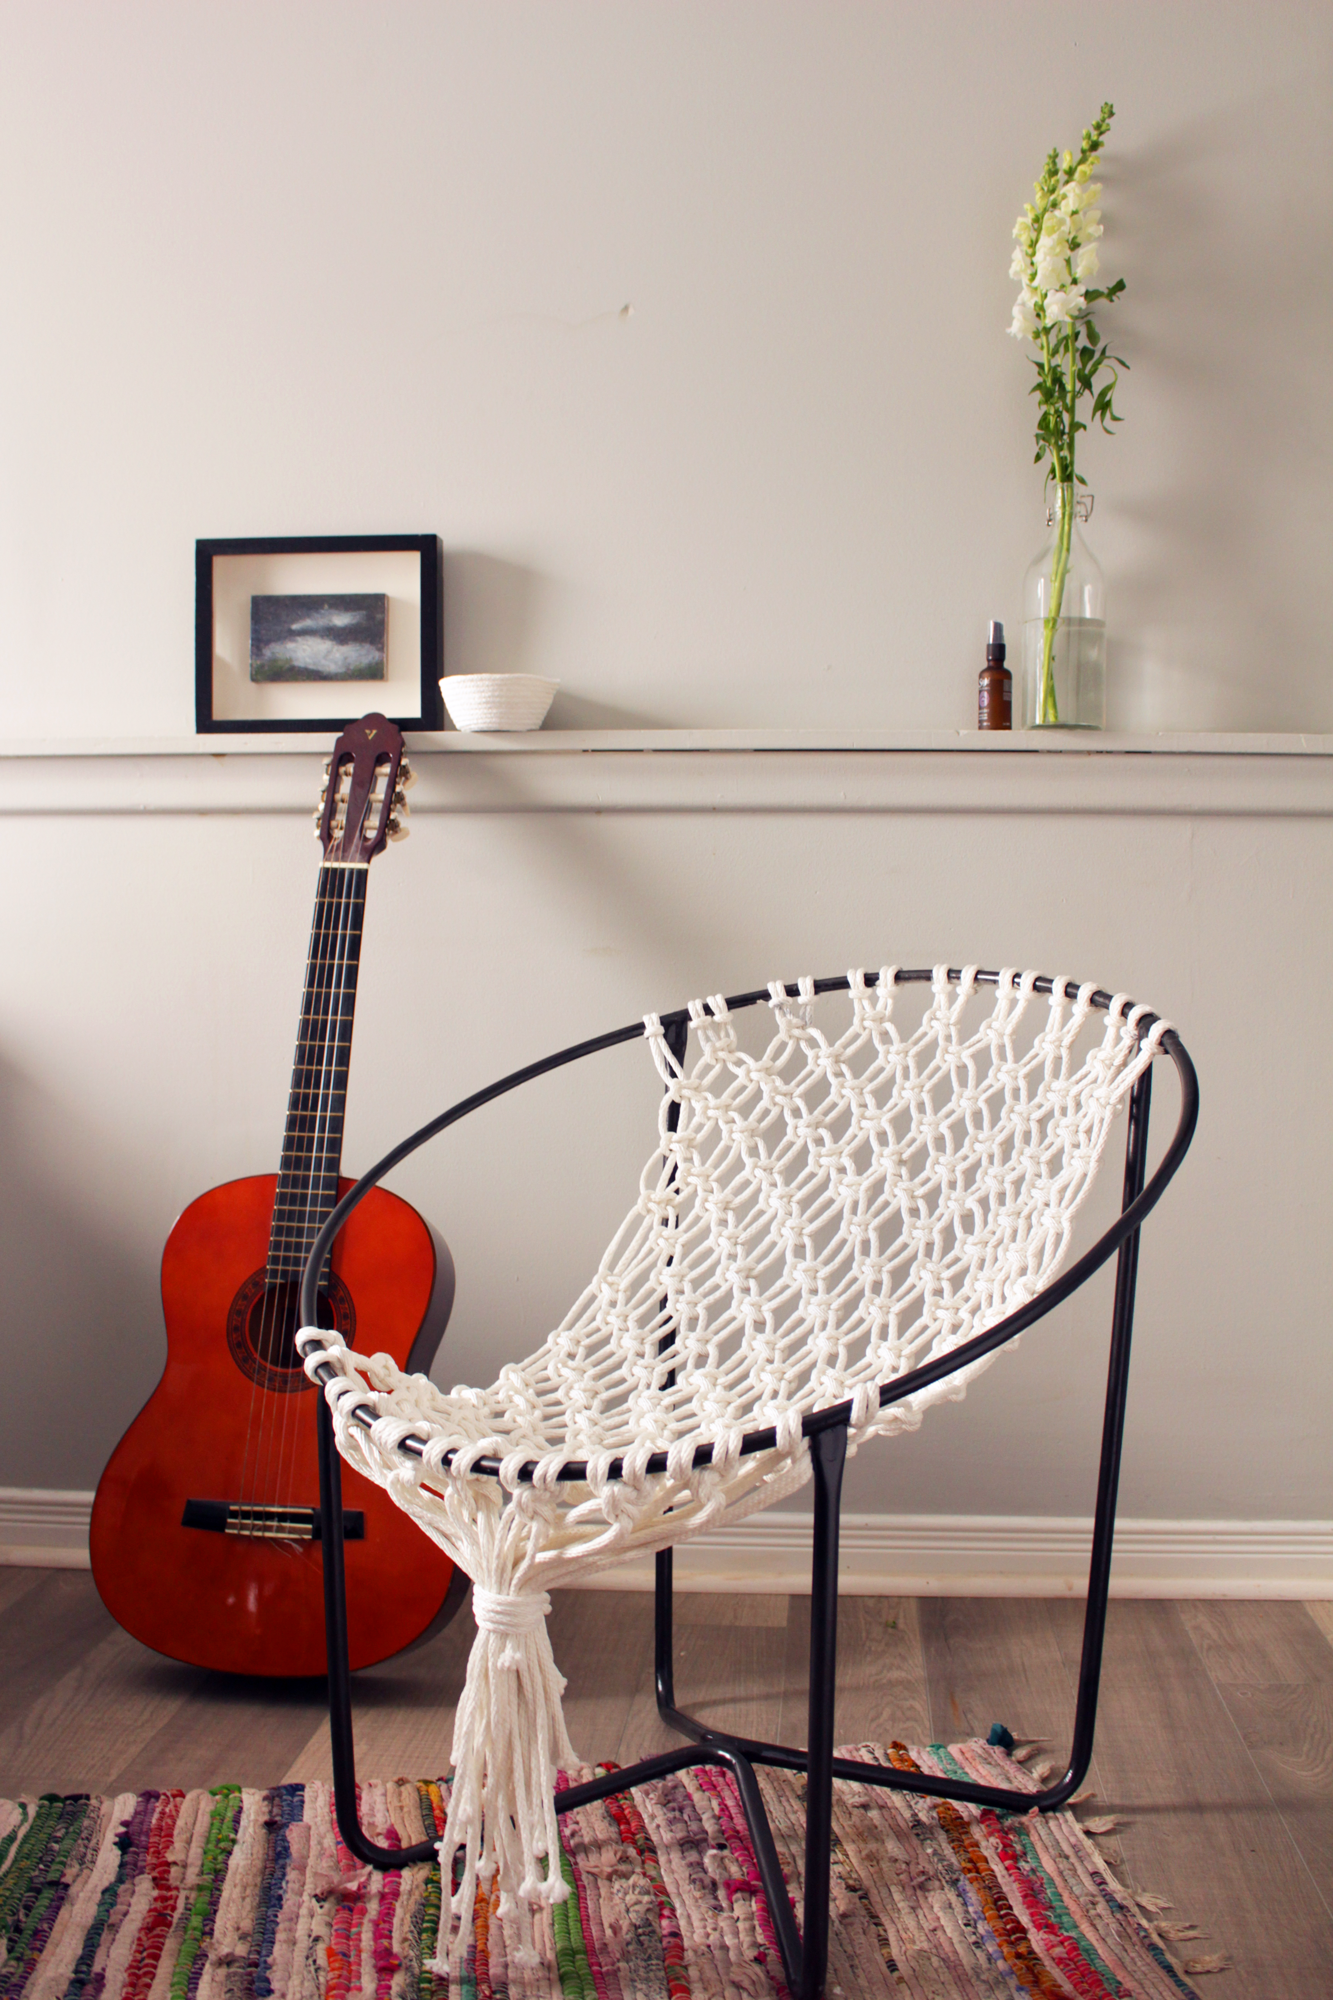 Diy macrame hammock chair hammock chair craft and crafty for Macrame hanging chair